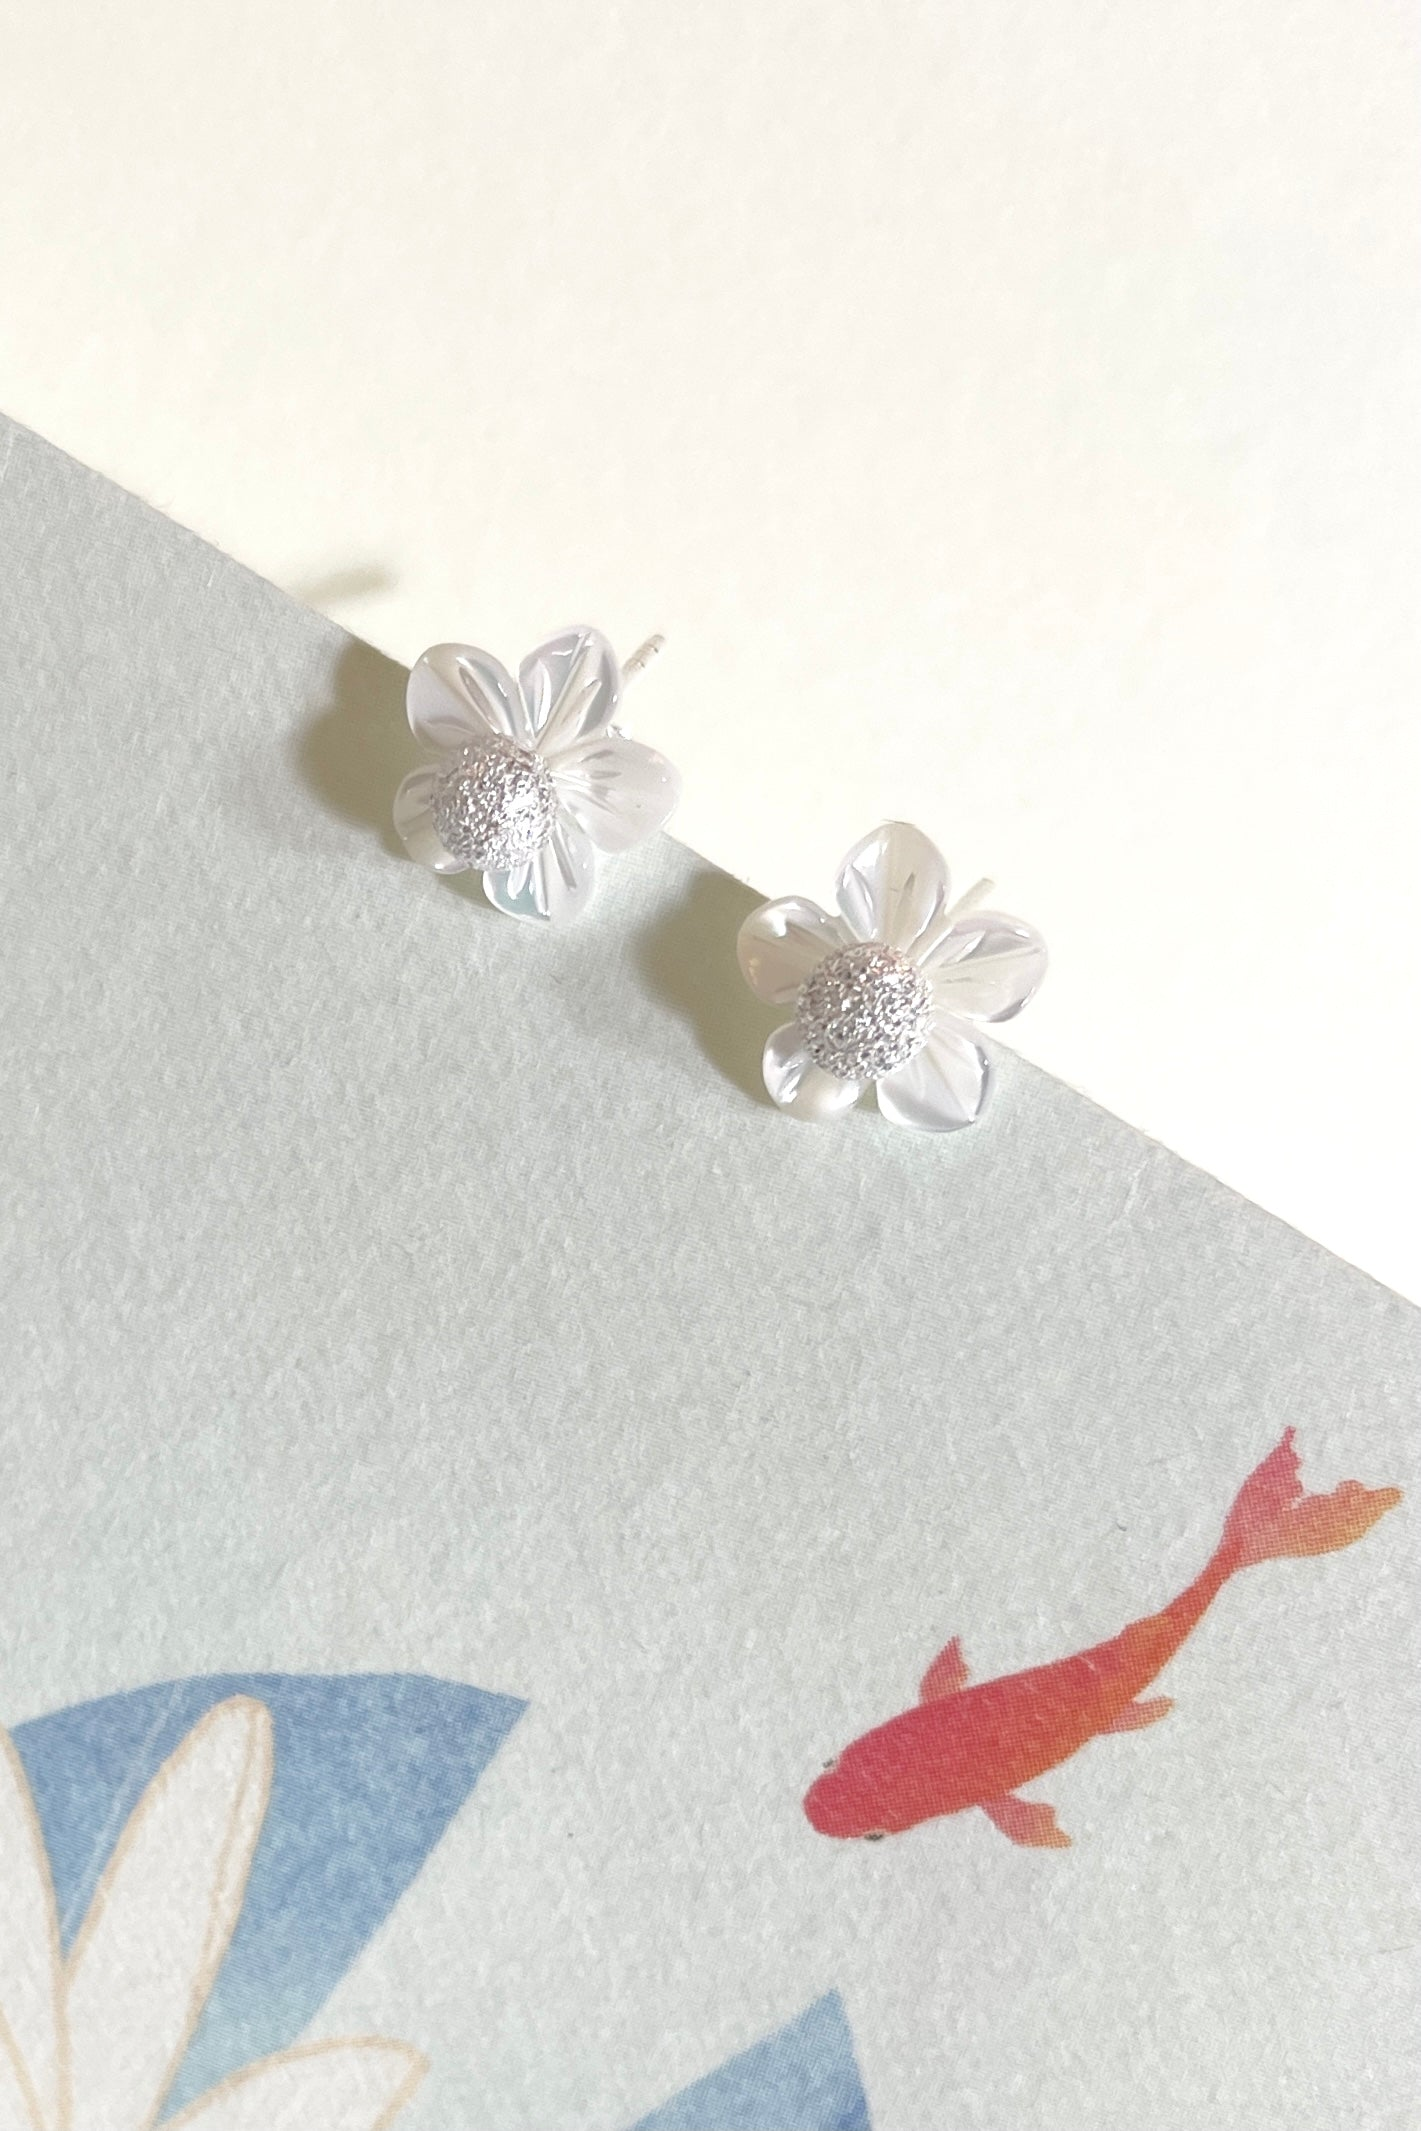 this lovely stud earring is carved from Mother of Pearl, the centre is a tiny silver ball stud that can be worn without the flower.